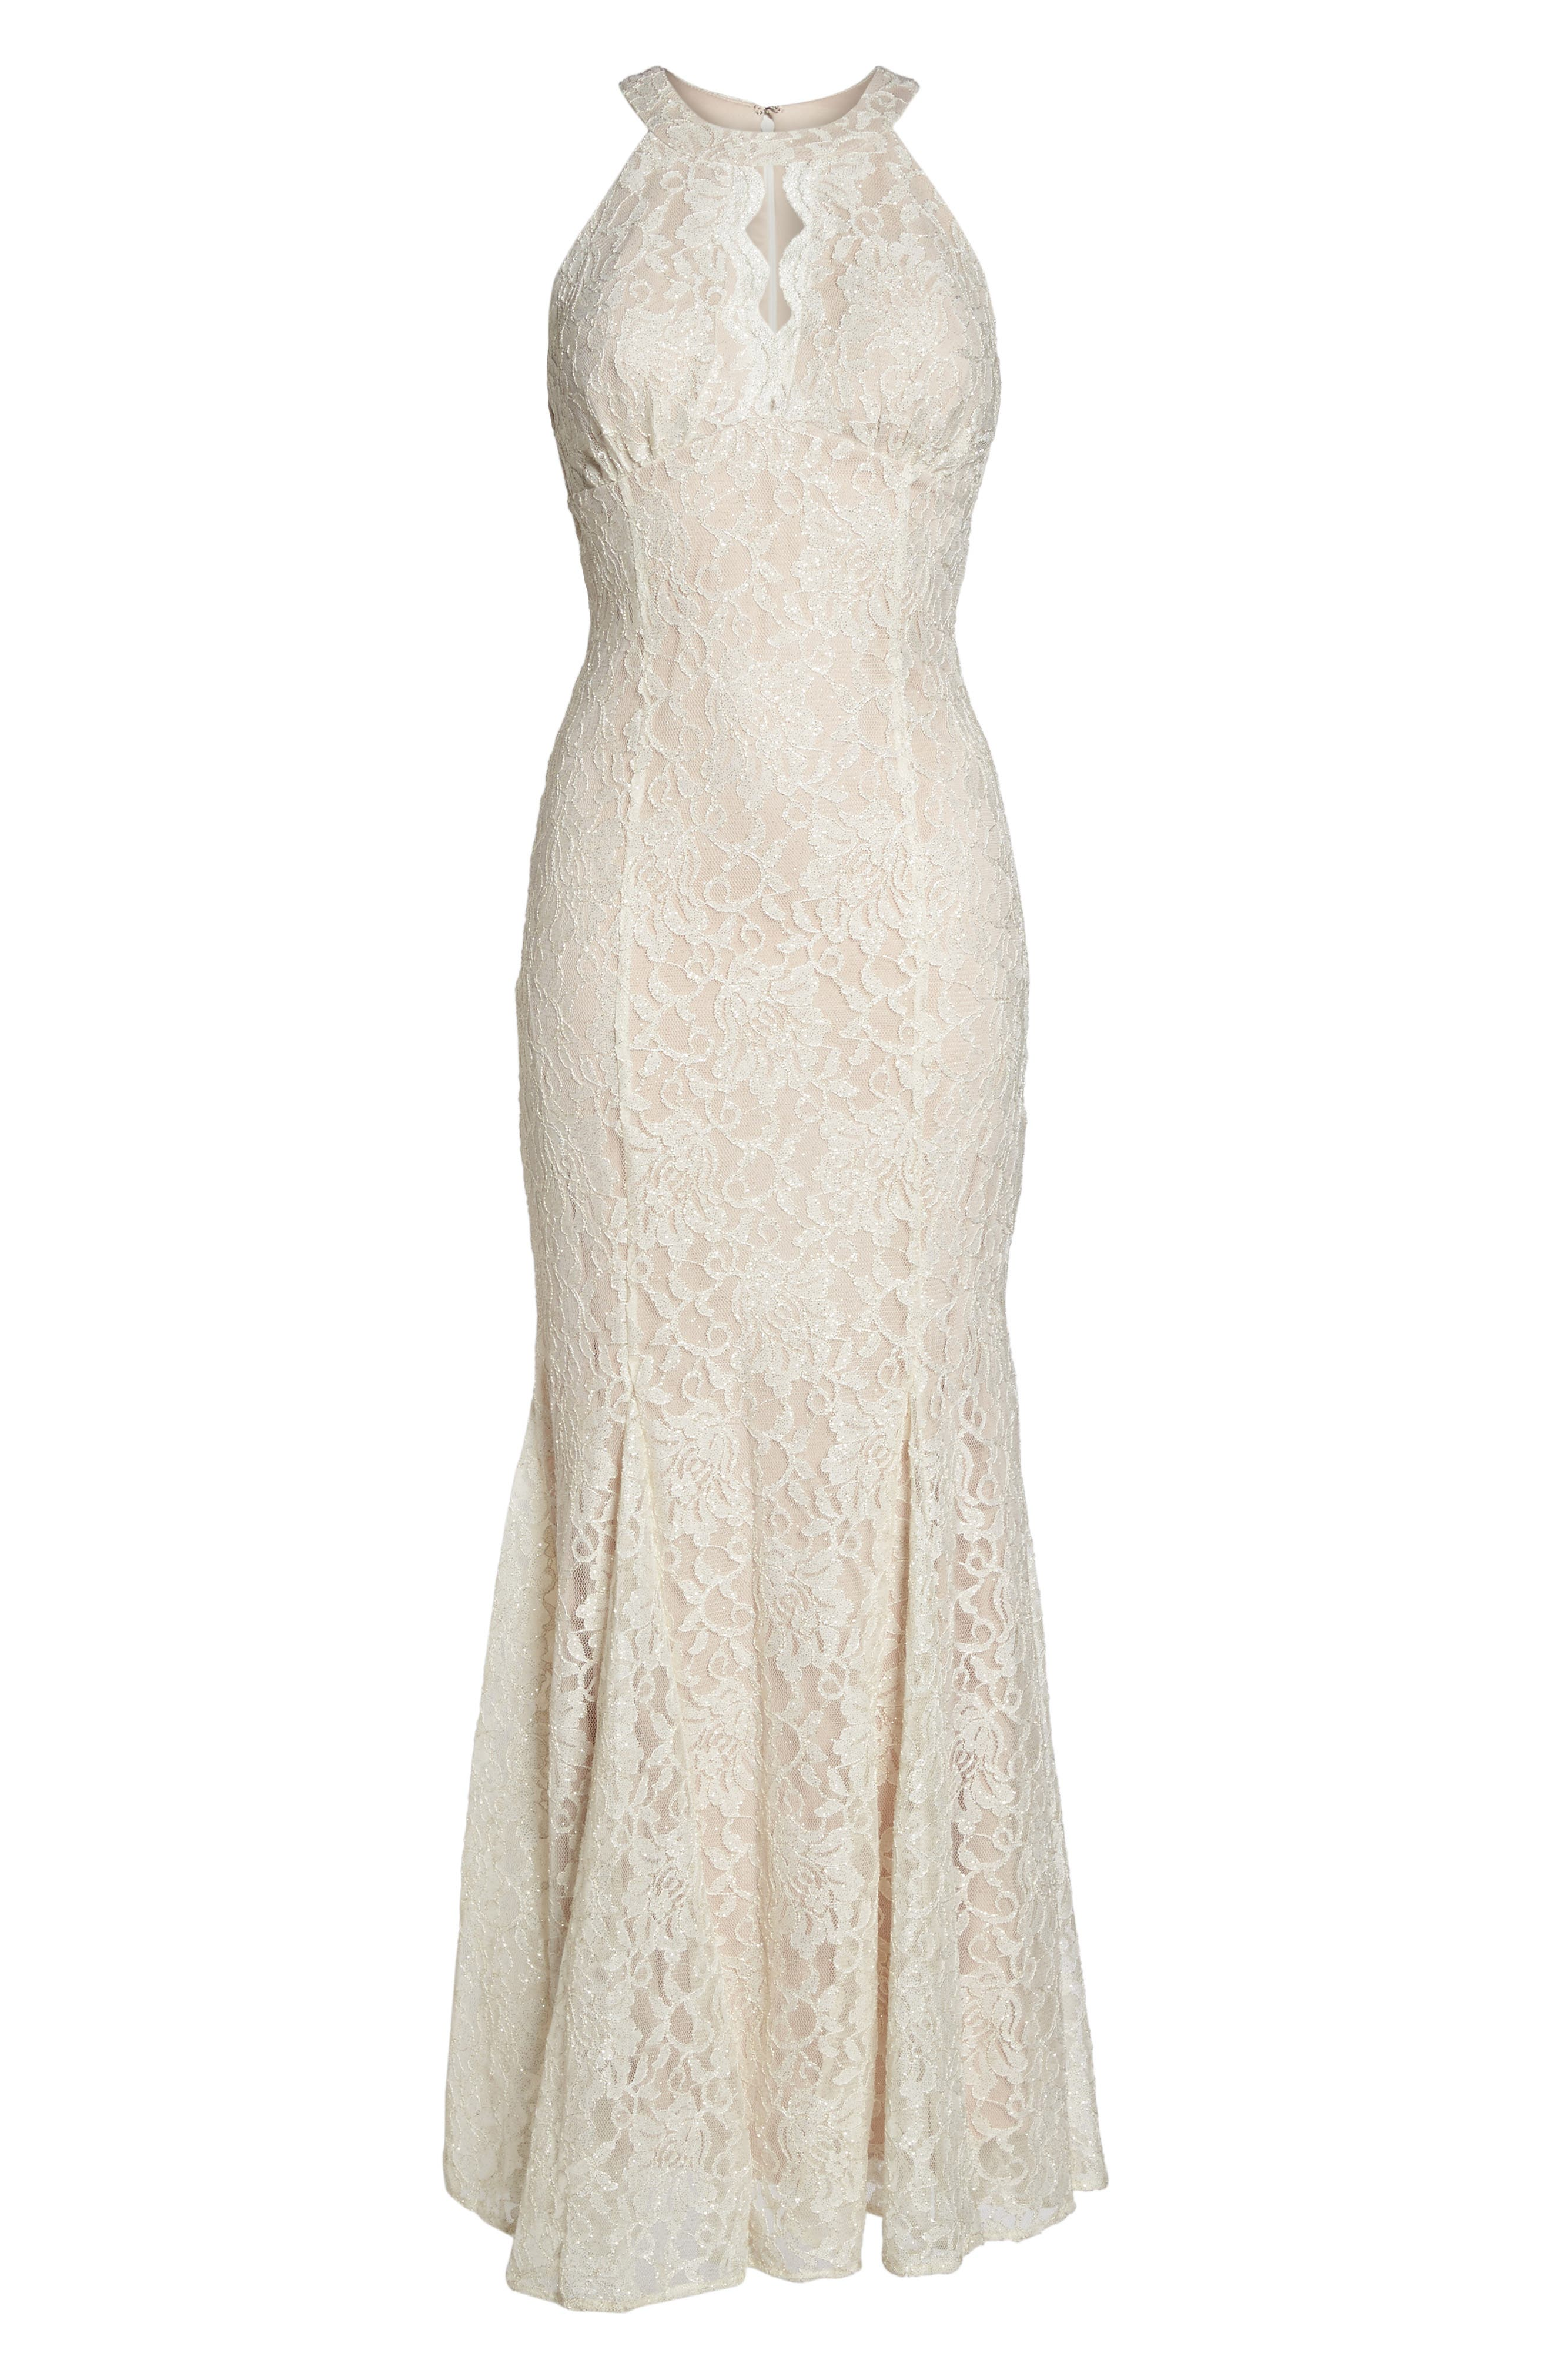 Scallop Detail Lace Gown,                             Alternate thumbnail 6, color,                             Ivory/ Nude